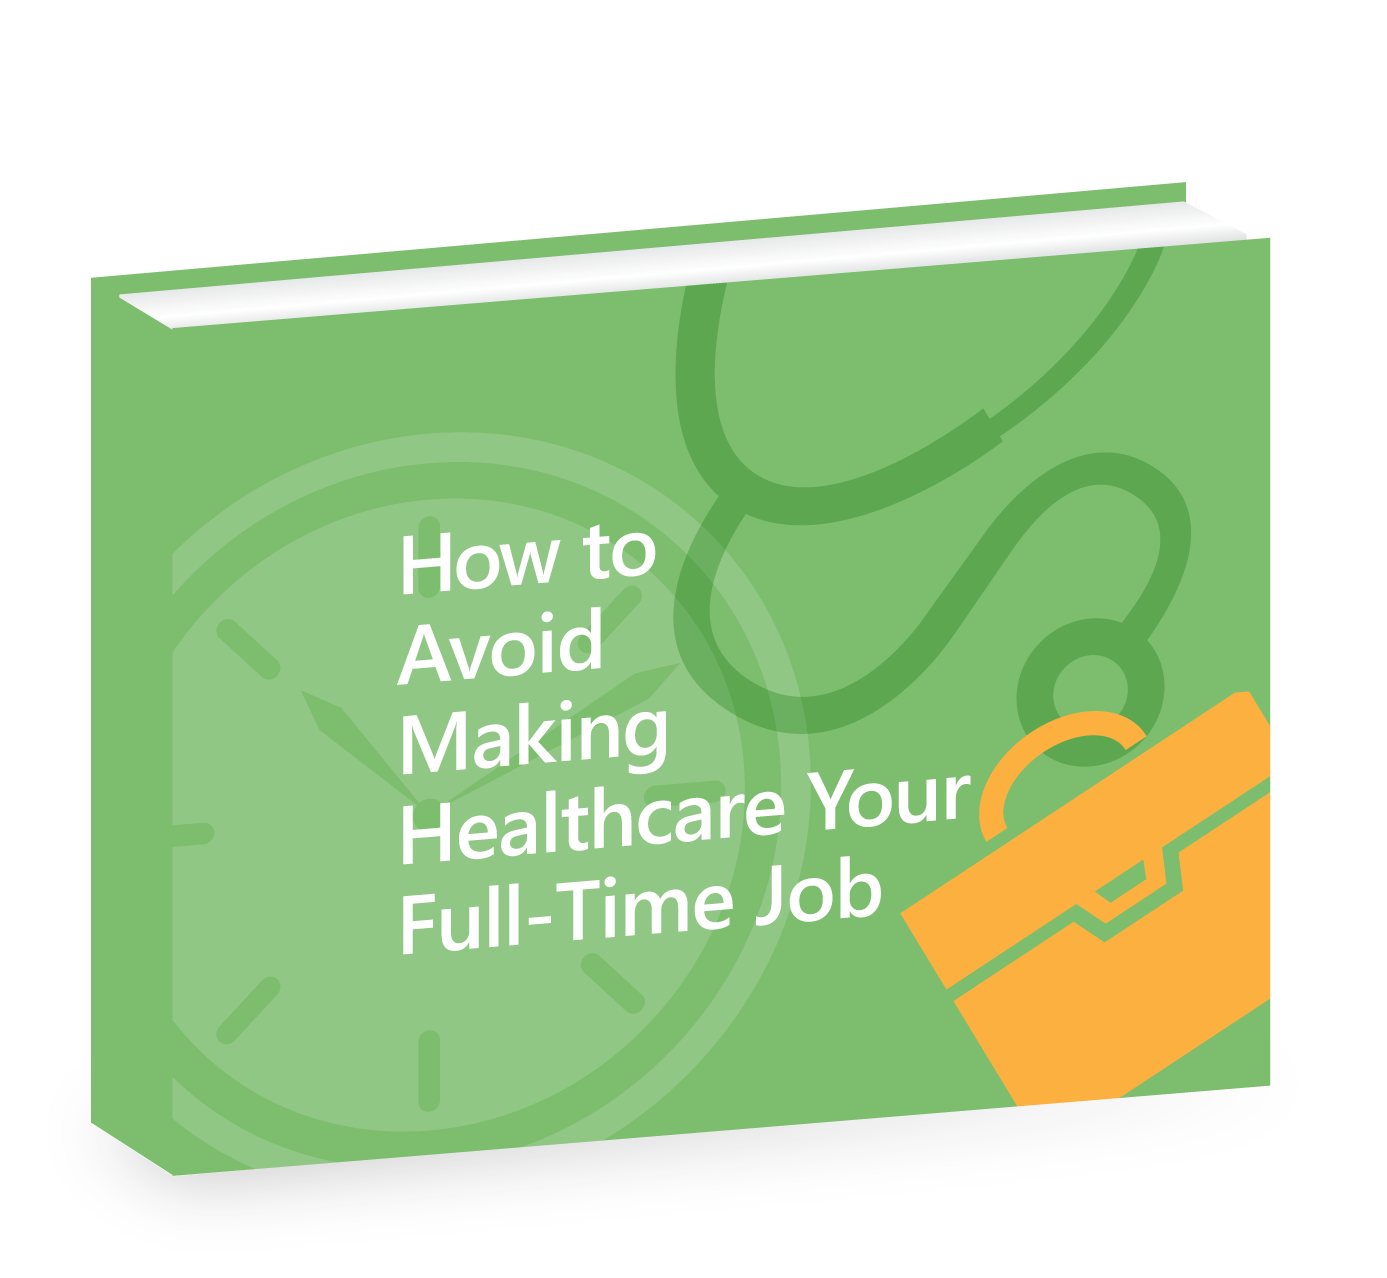 Book_How_to_avoid_Making_Healthcare_Your_fulltime_job.png